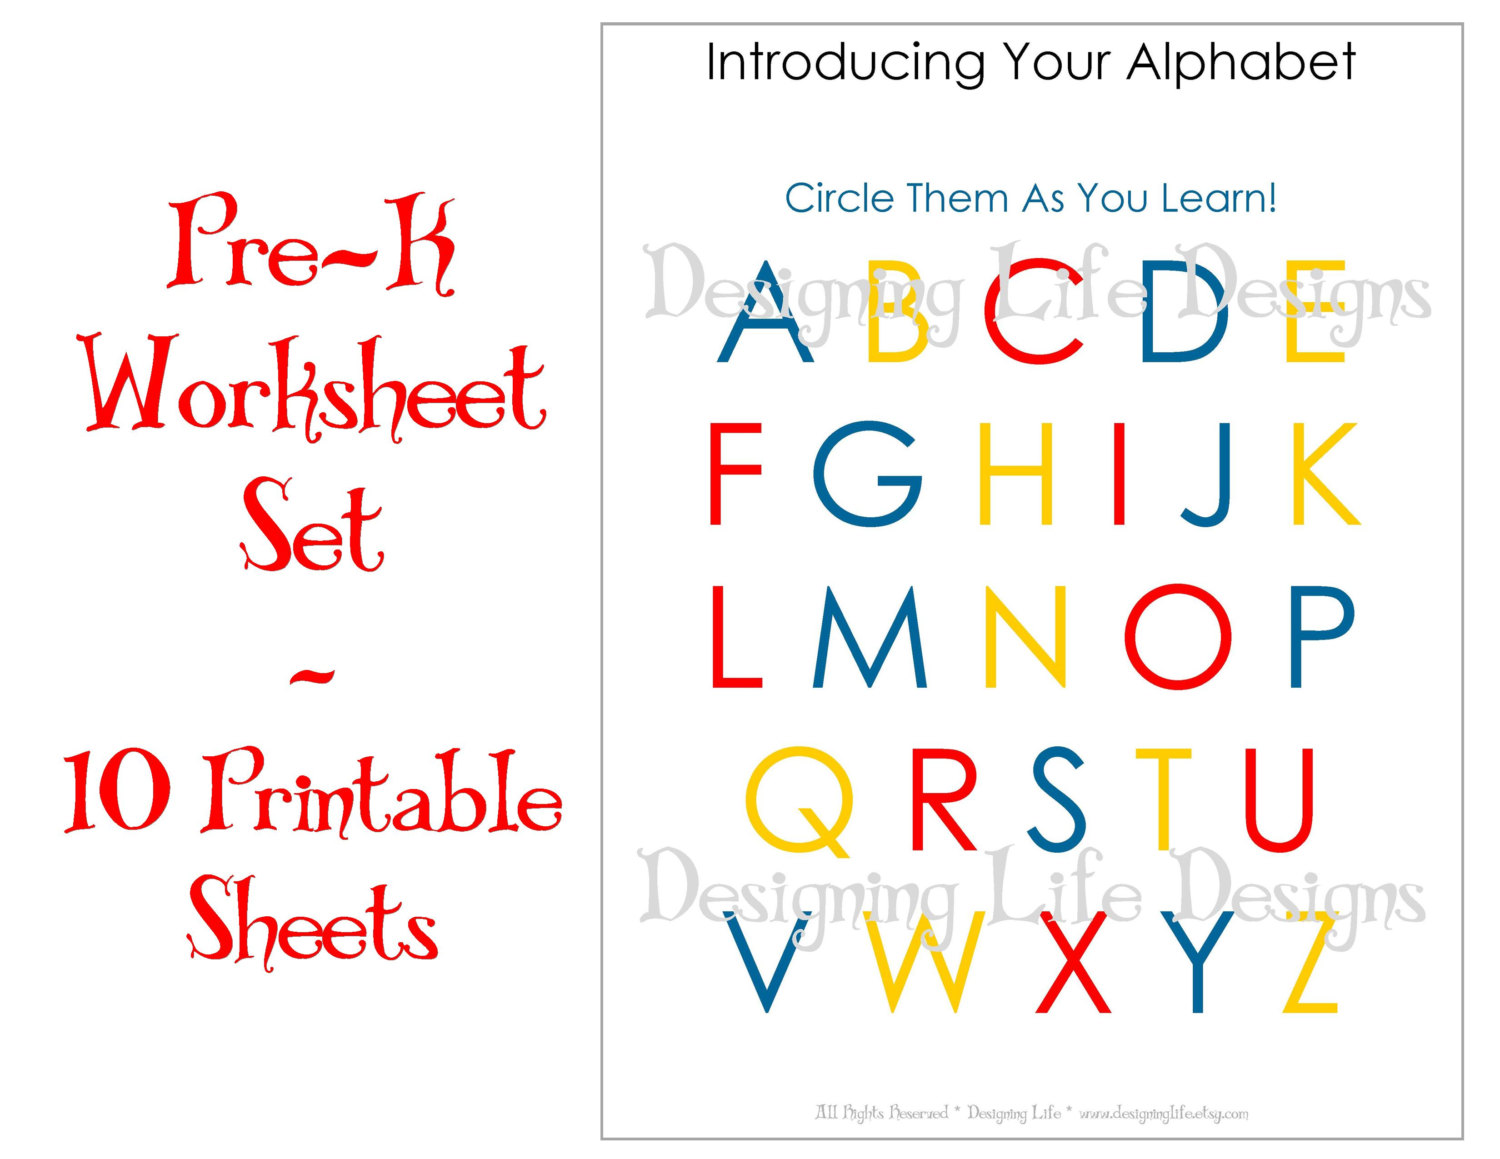 worksheet Worksheet For Pre-k free prek worksheets templates and preschool for pre